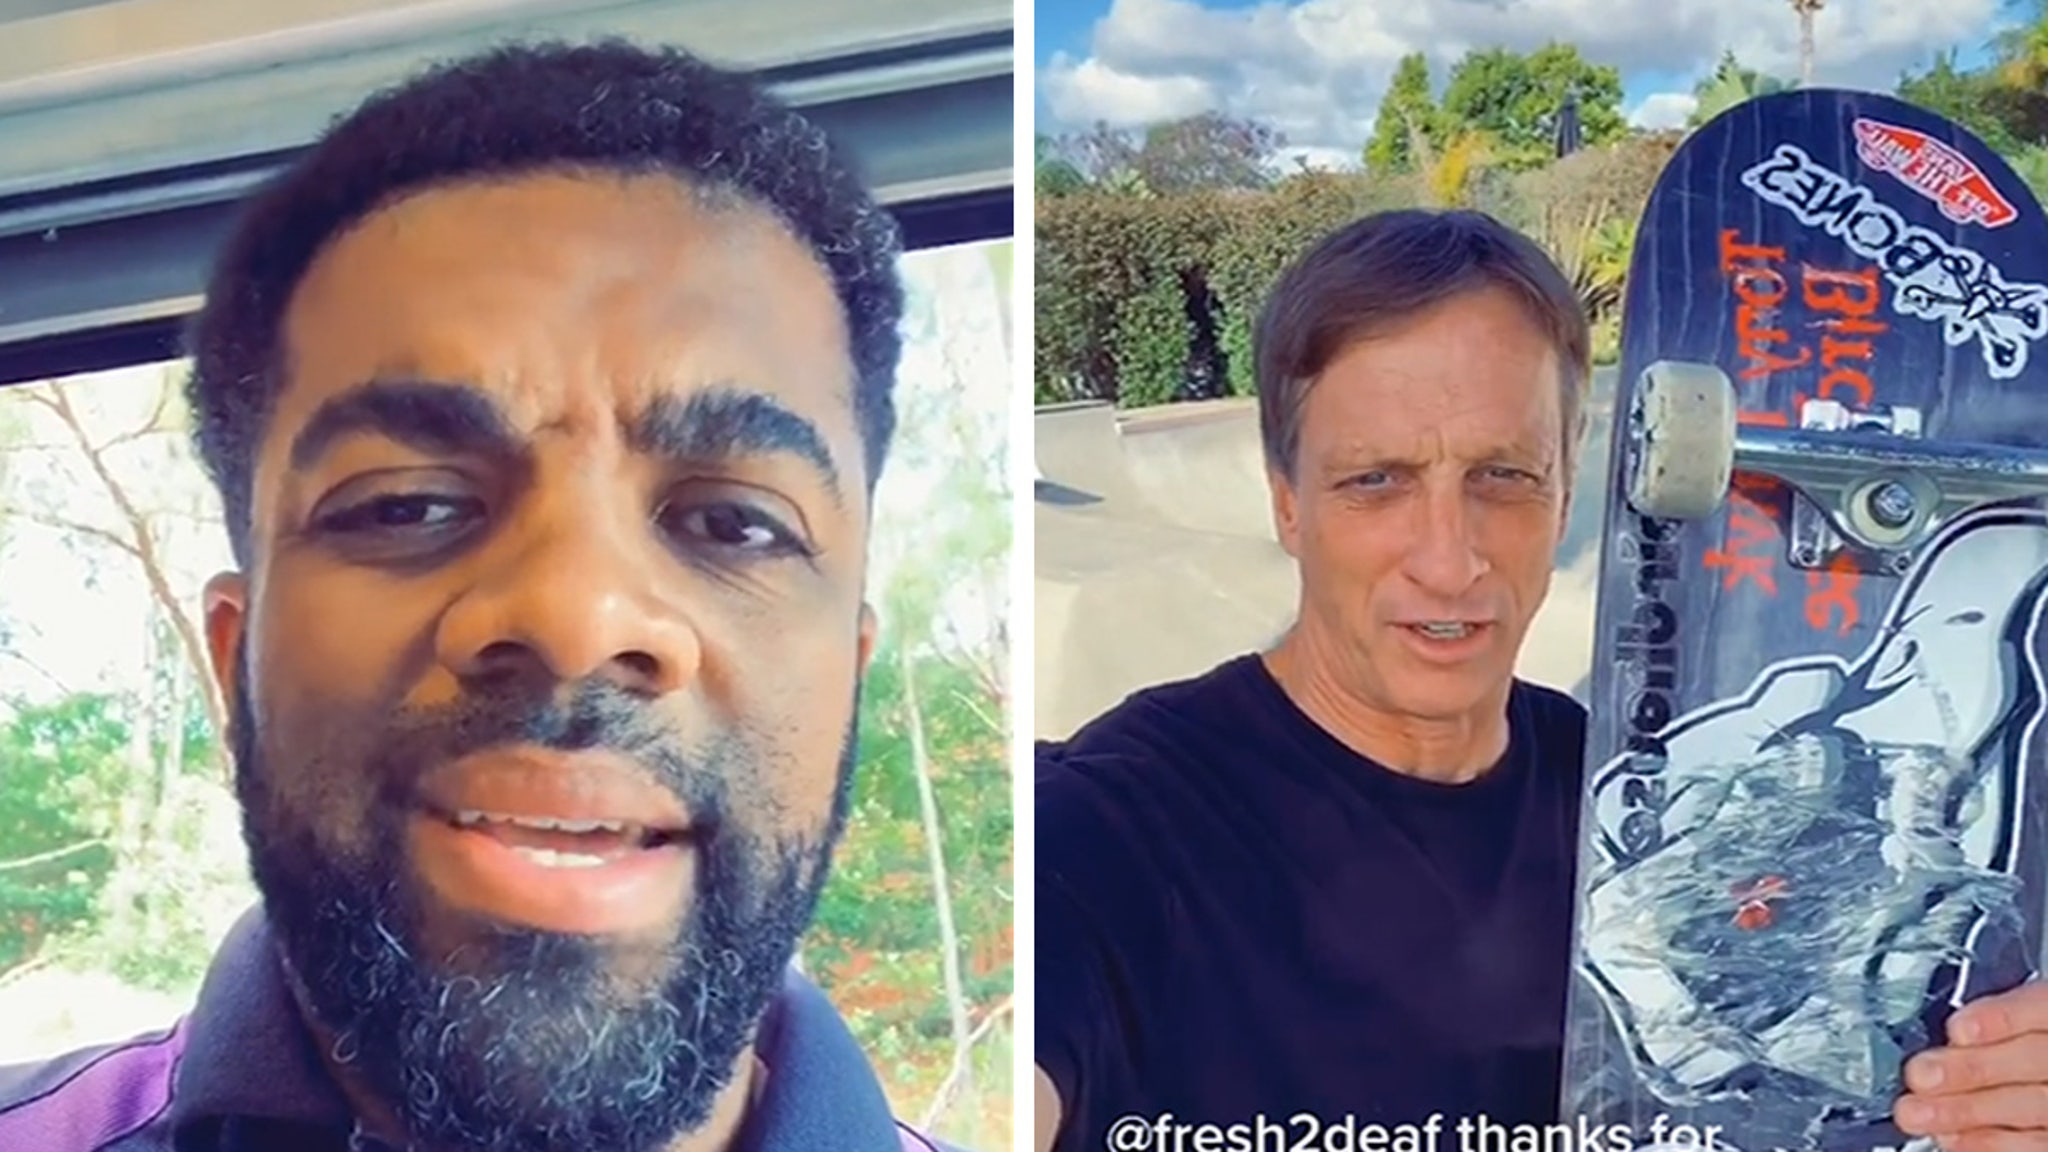 Tony Hawk Sends Amazing Video to Kid Who Tried Mailing Skateboard to Skate Legend